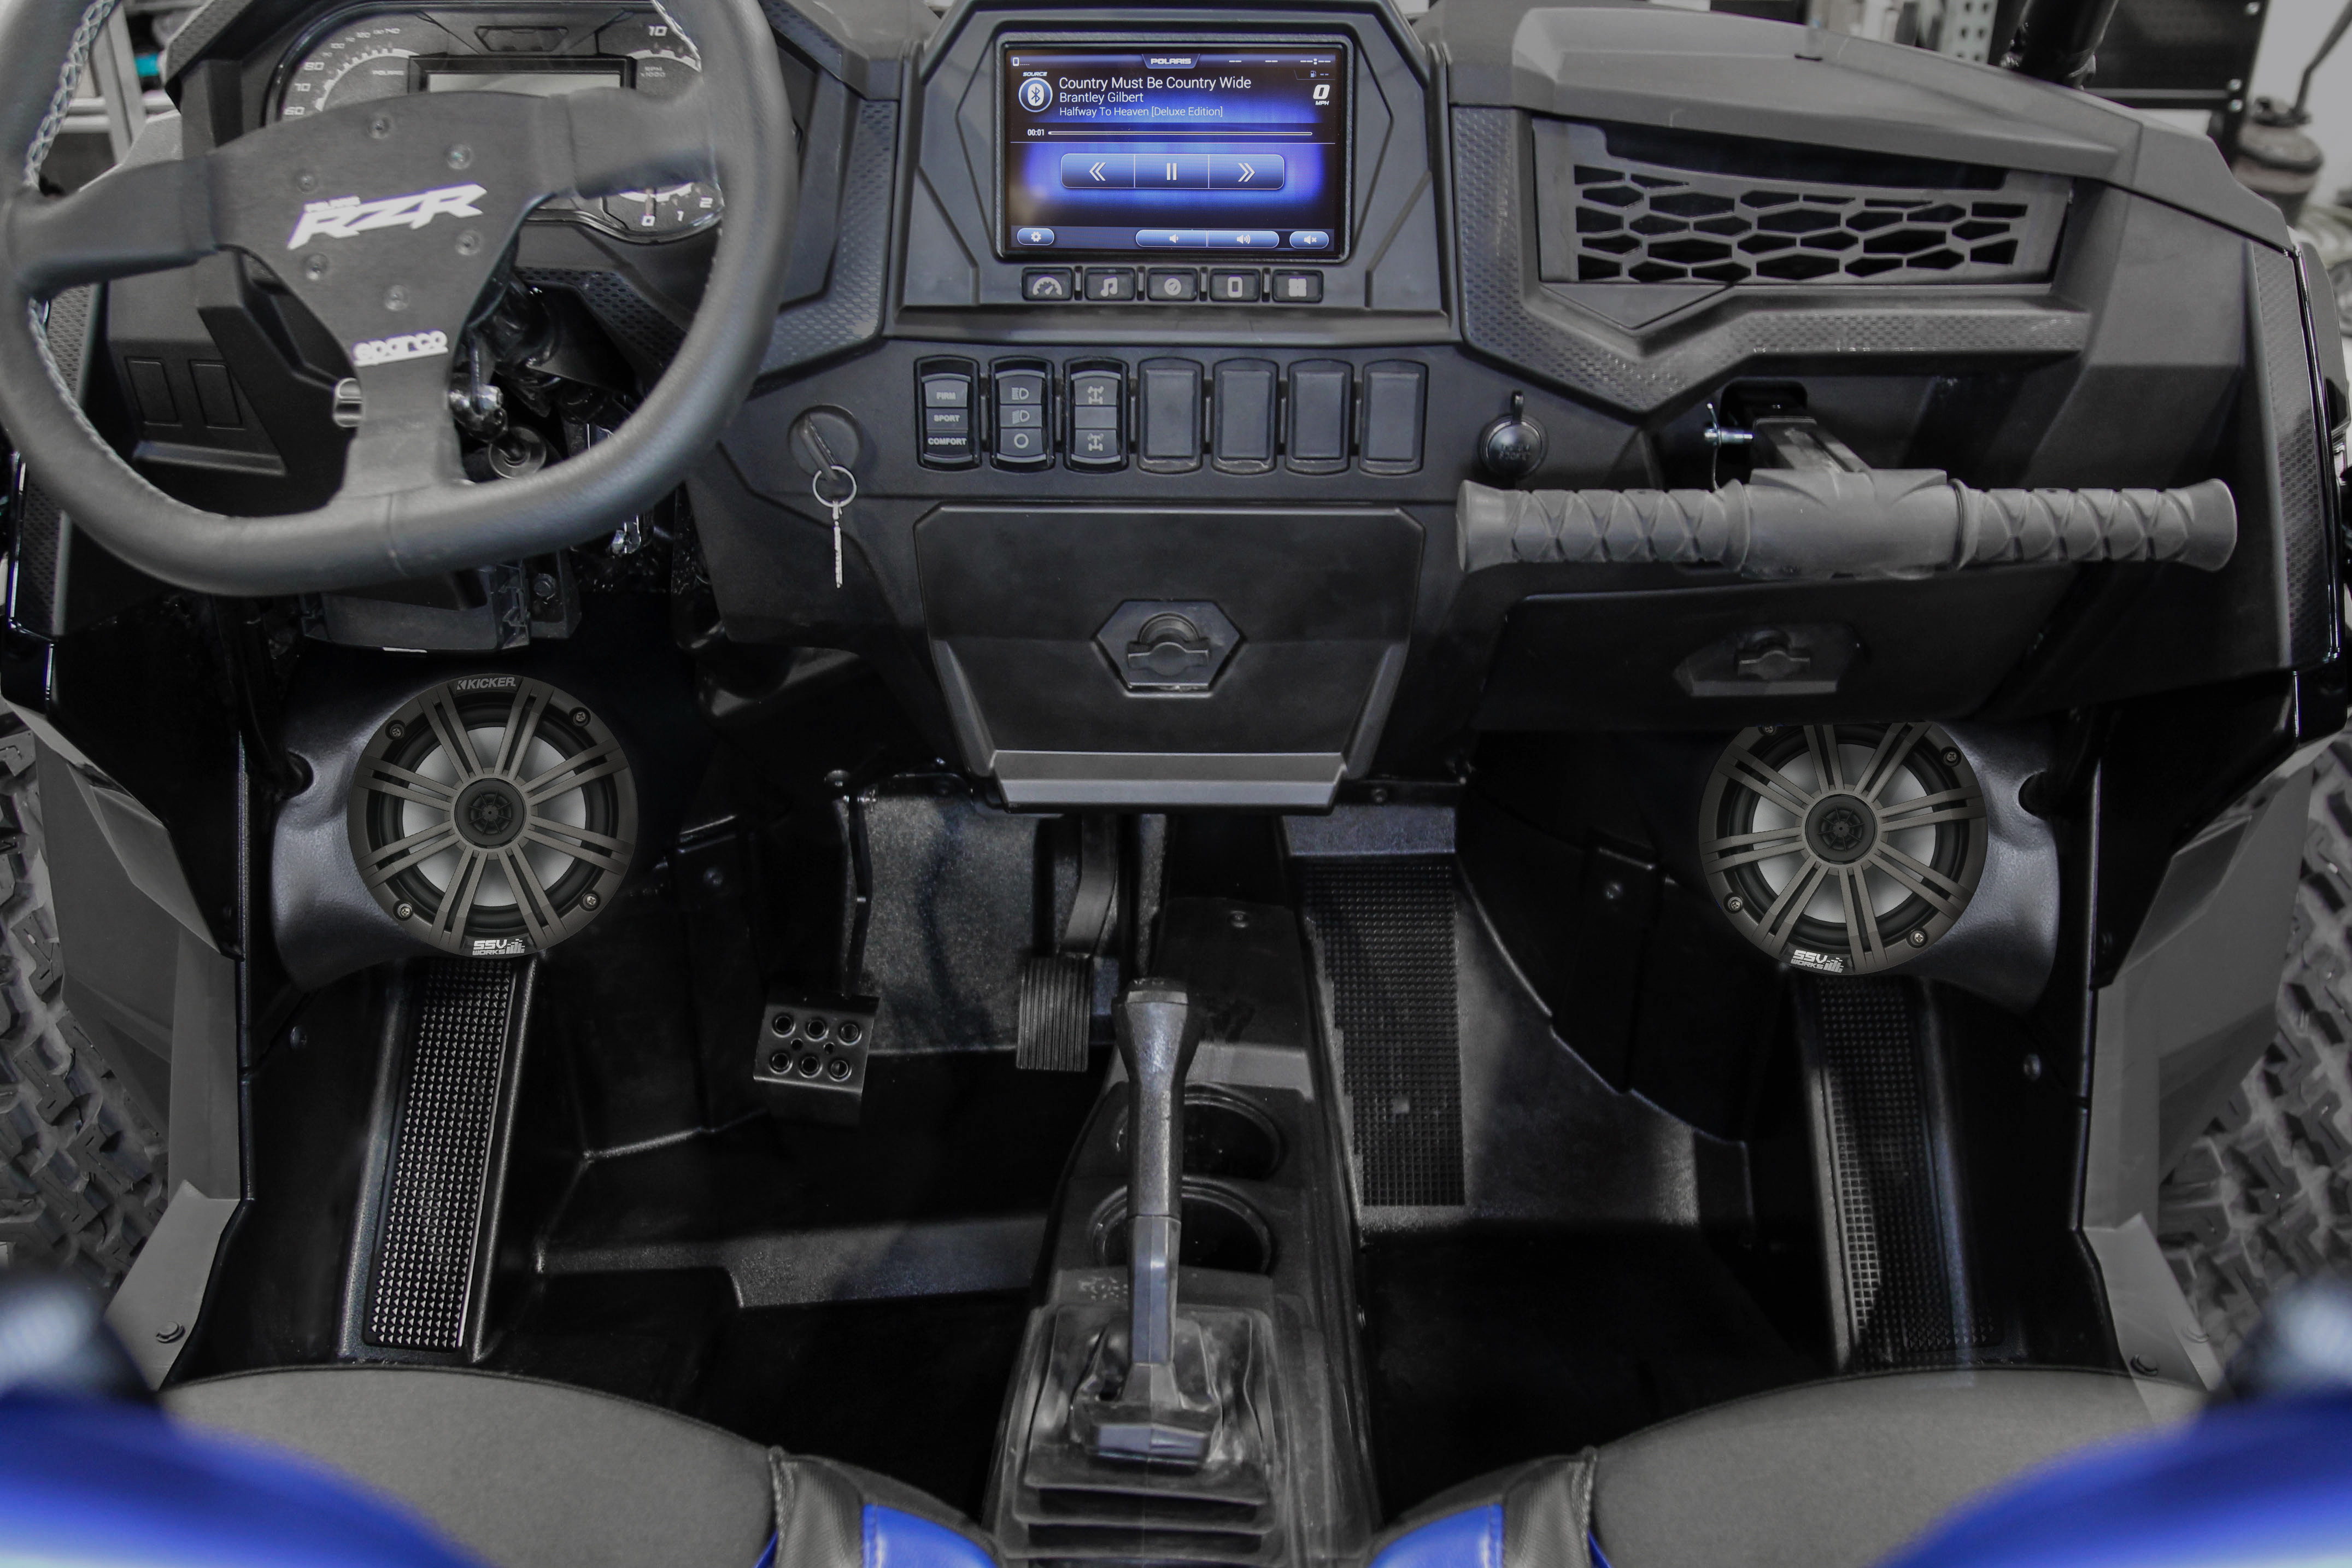 Plug-&-Play audio upgrade for the Polaris Ride Command system